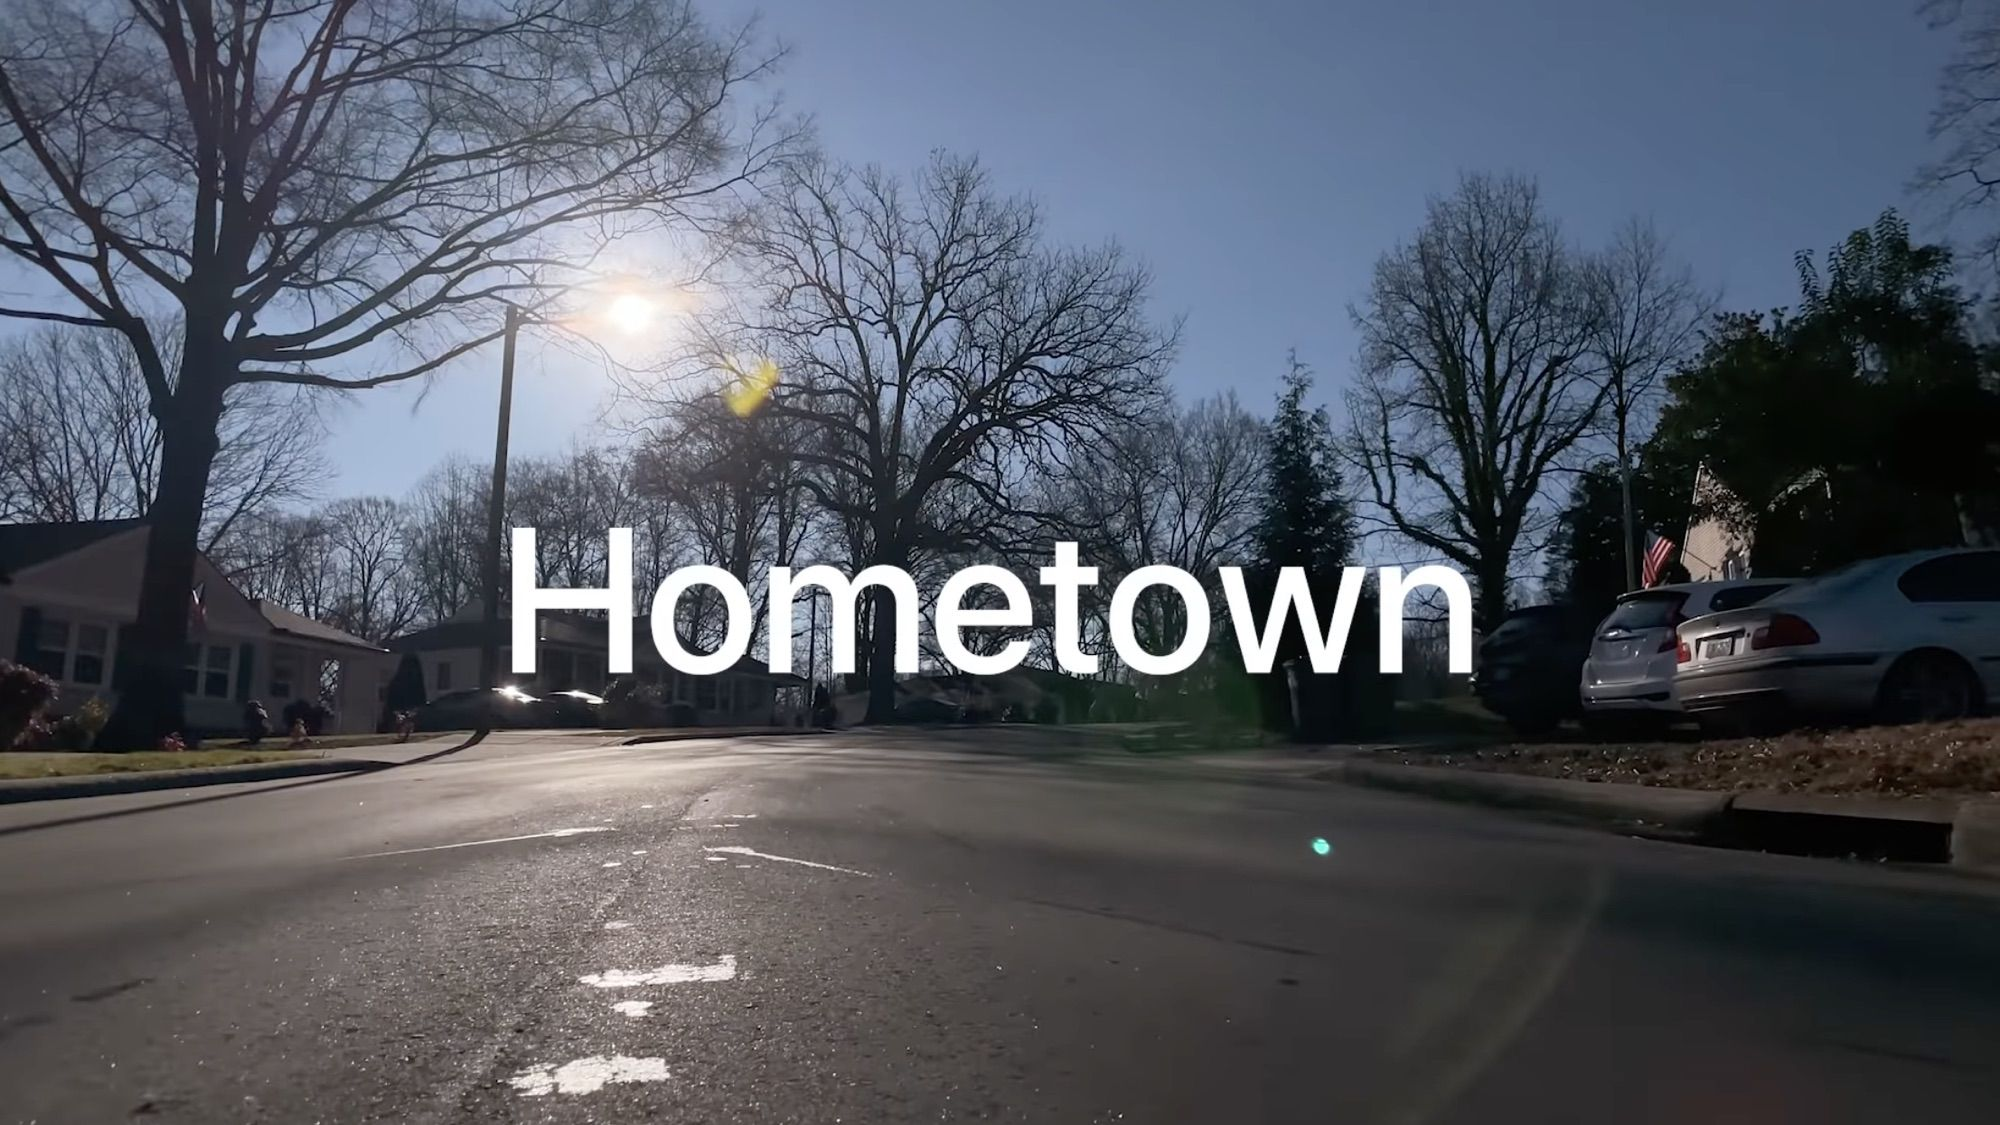 Apple Shares New 'Hometown' Shot on iPhone Video - MacRumors